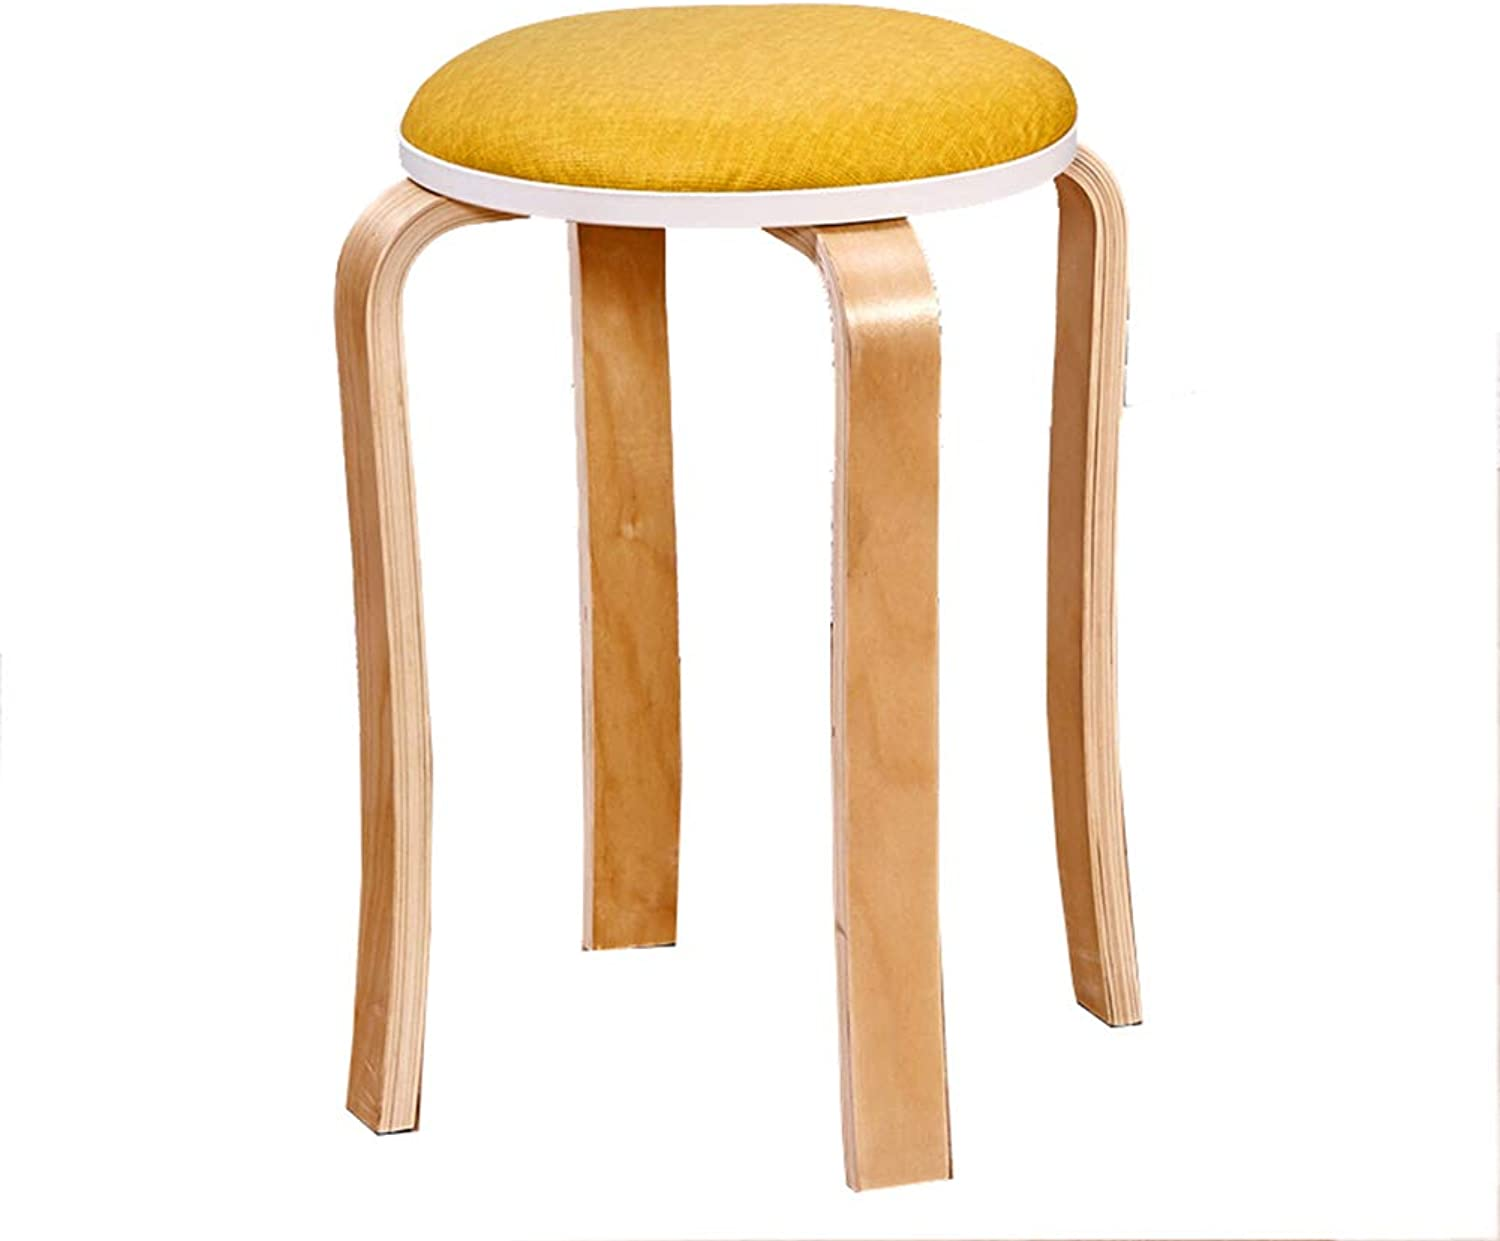 ZHANGGUOHUA Step Stools Work Stool Beauty Roller Stool Household Space Saving Thicken Soft Surface Multicolor Selection High Stool 40  40  47cm (color   Yellow)